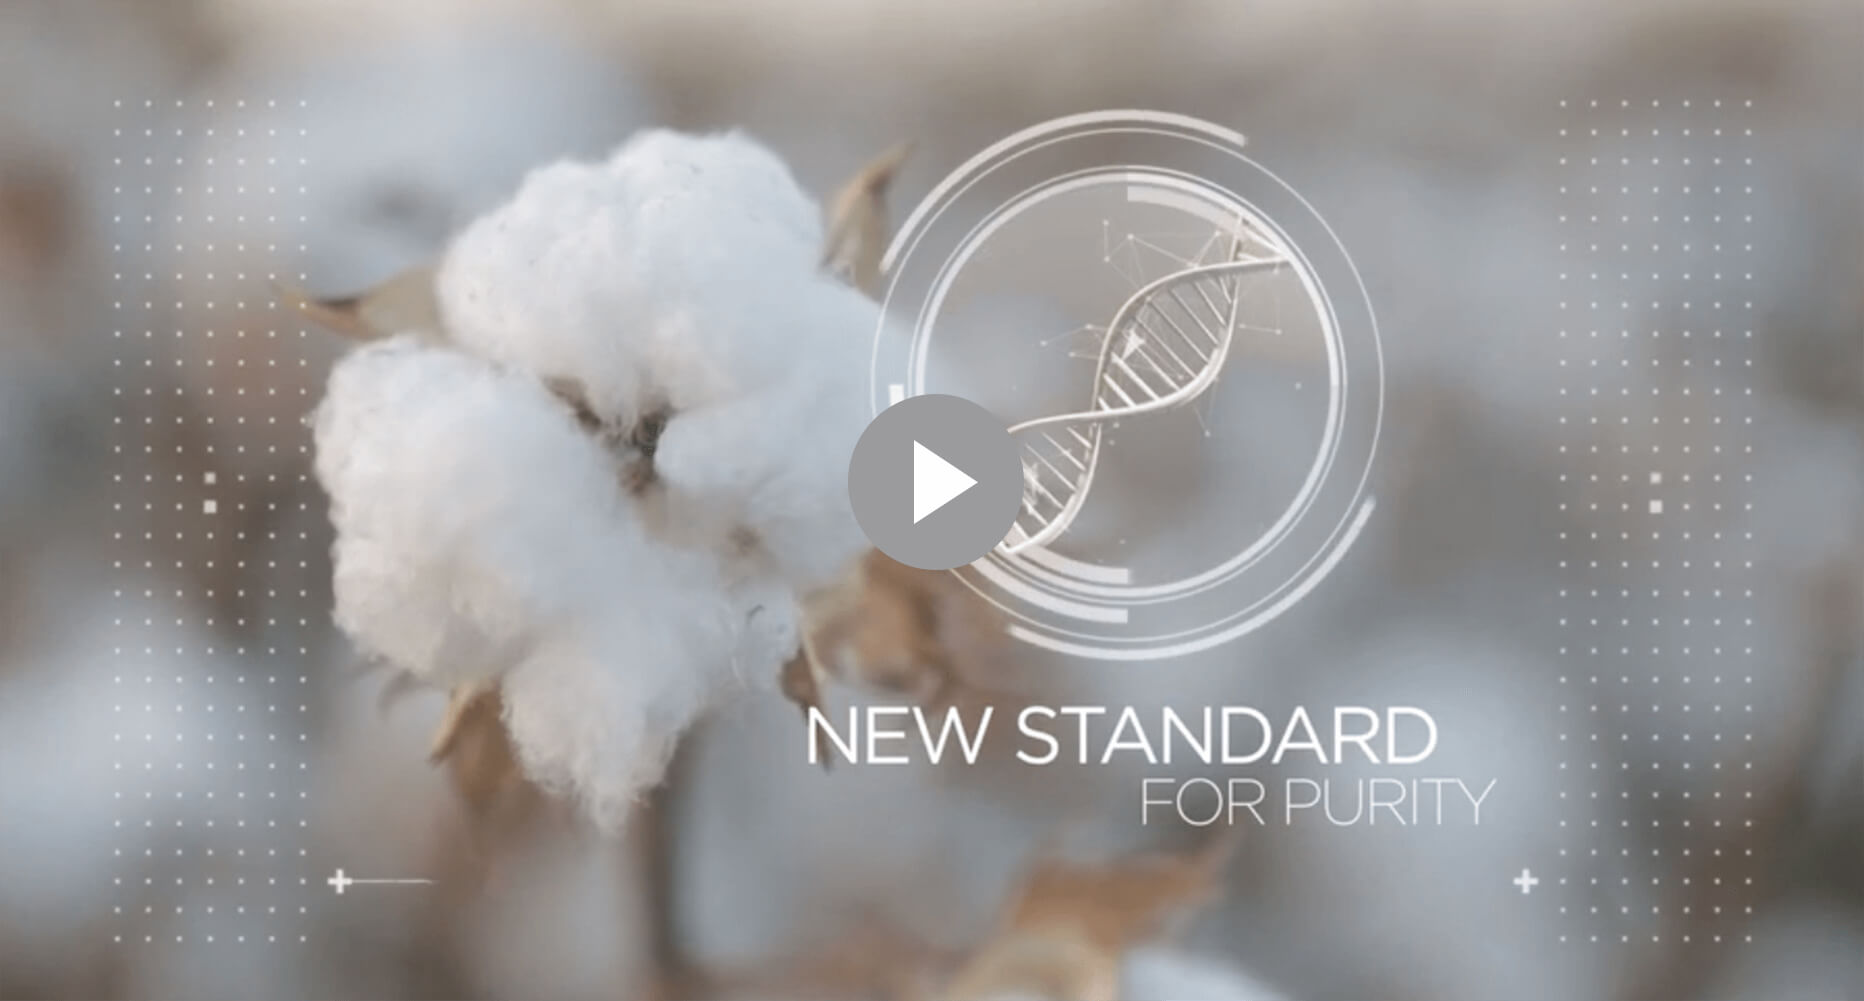 New Standard for Purity: cotton, DNA